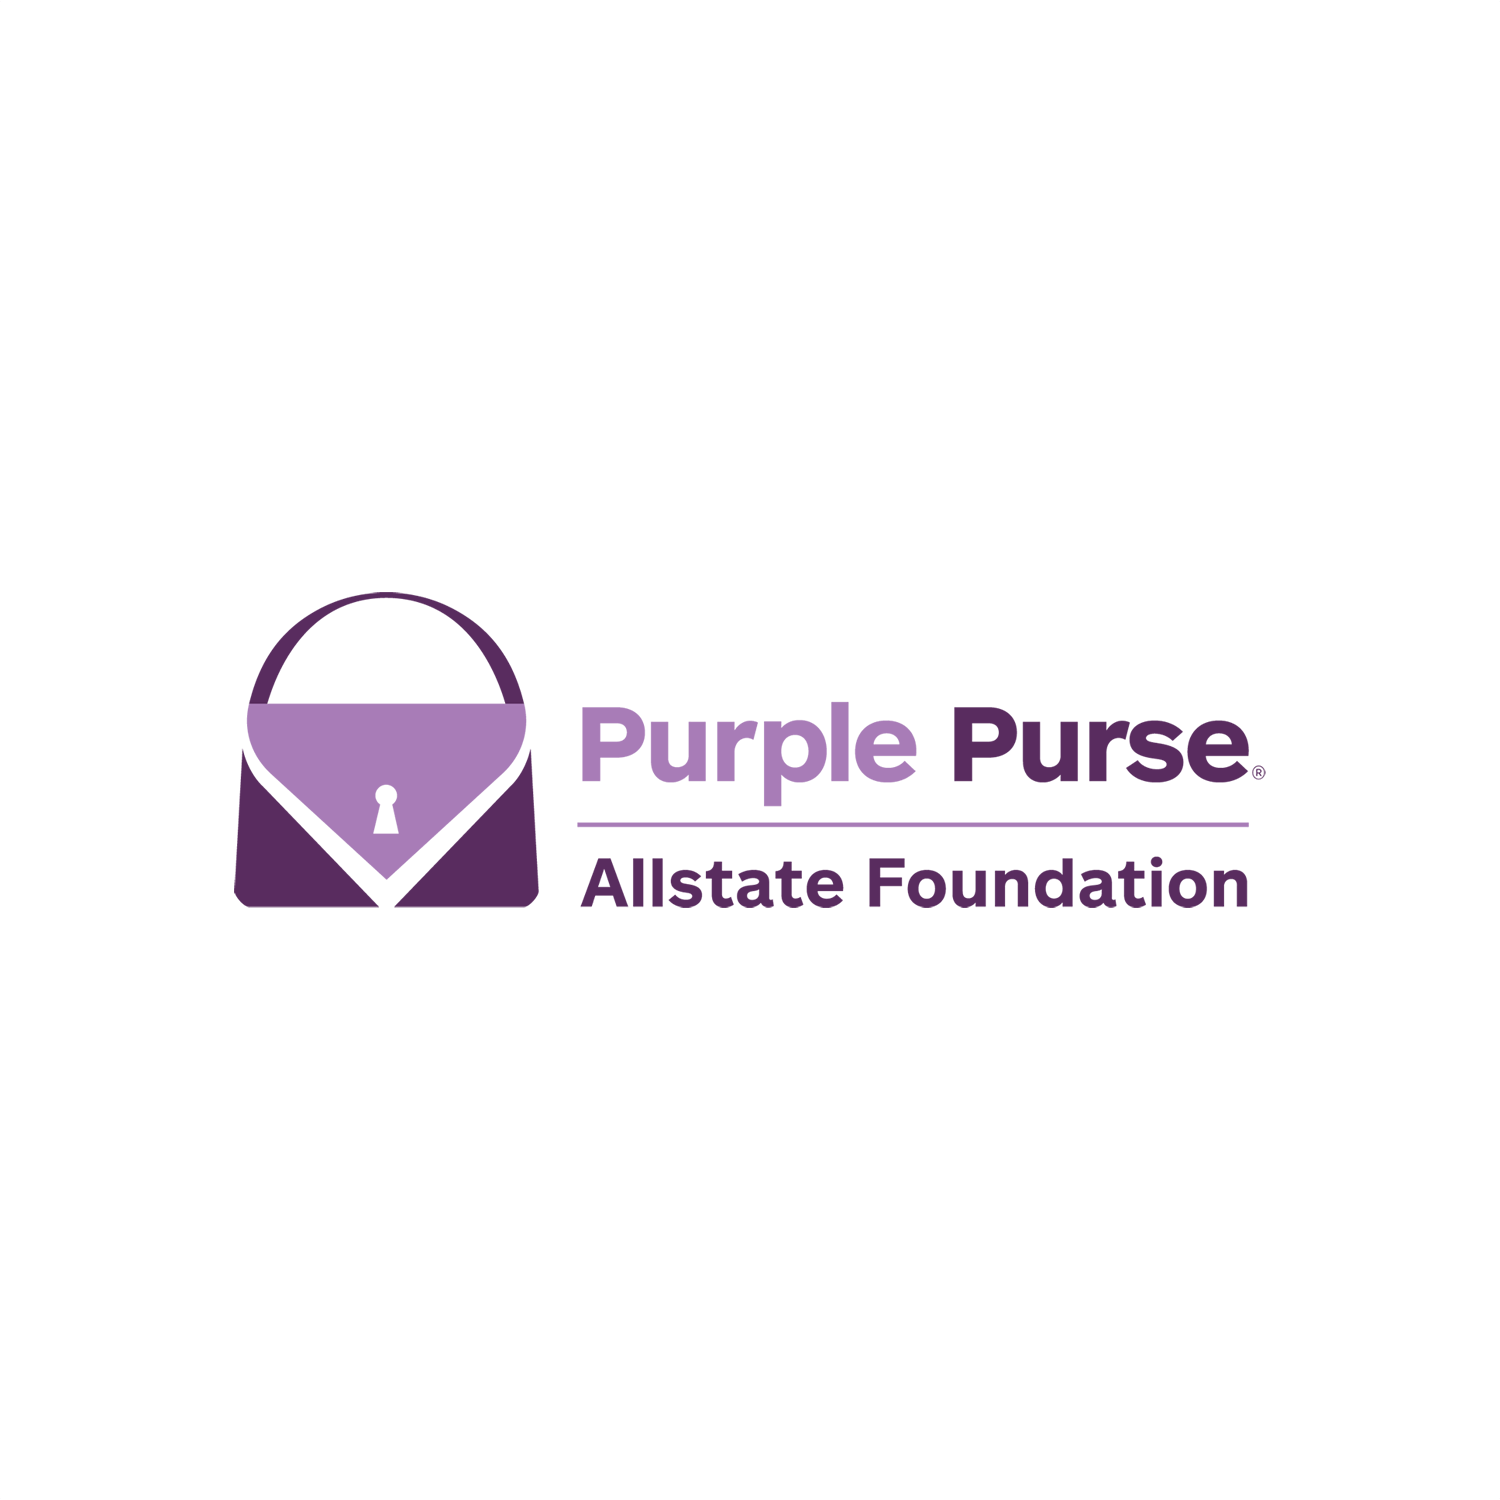 2017 Allstate Foundation Purple Purse Challenge Photo